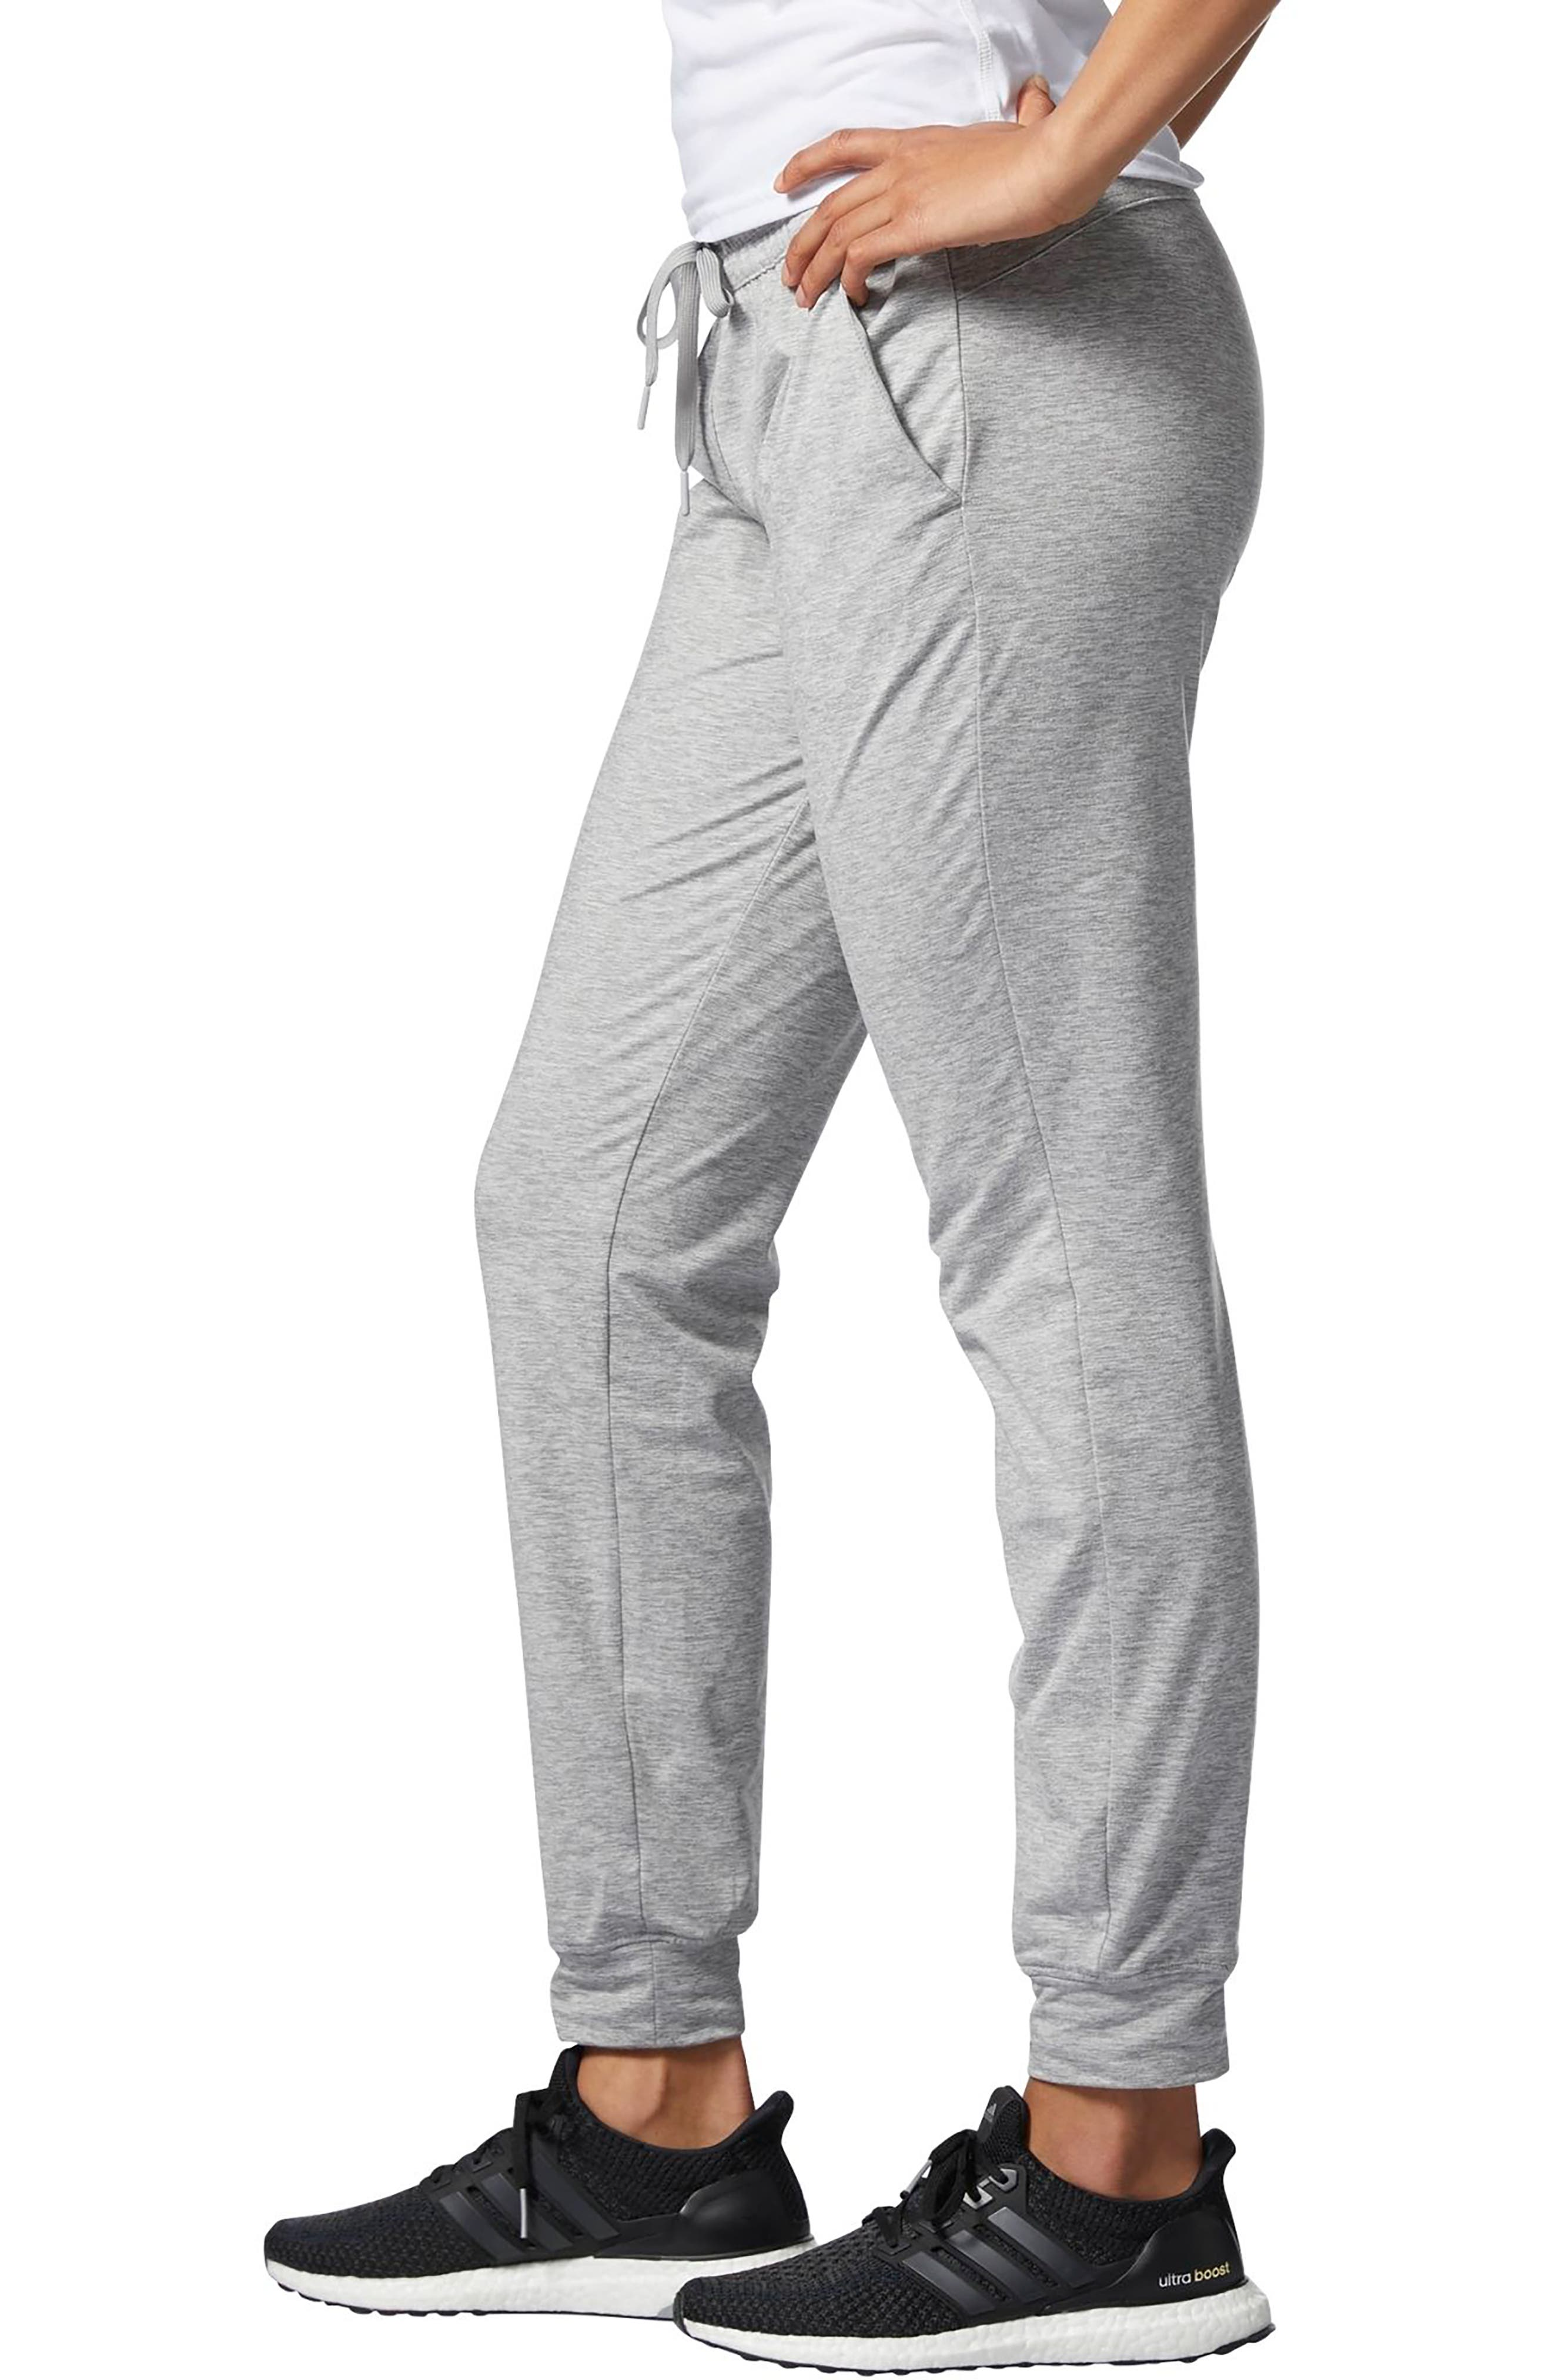 Sport ID Tapered Sweatpants,                             Alternate thumbnail 3, color,                             035